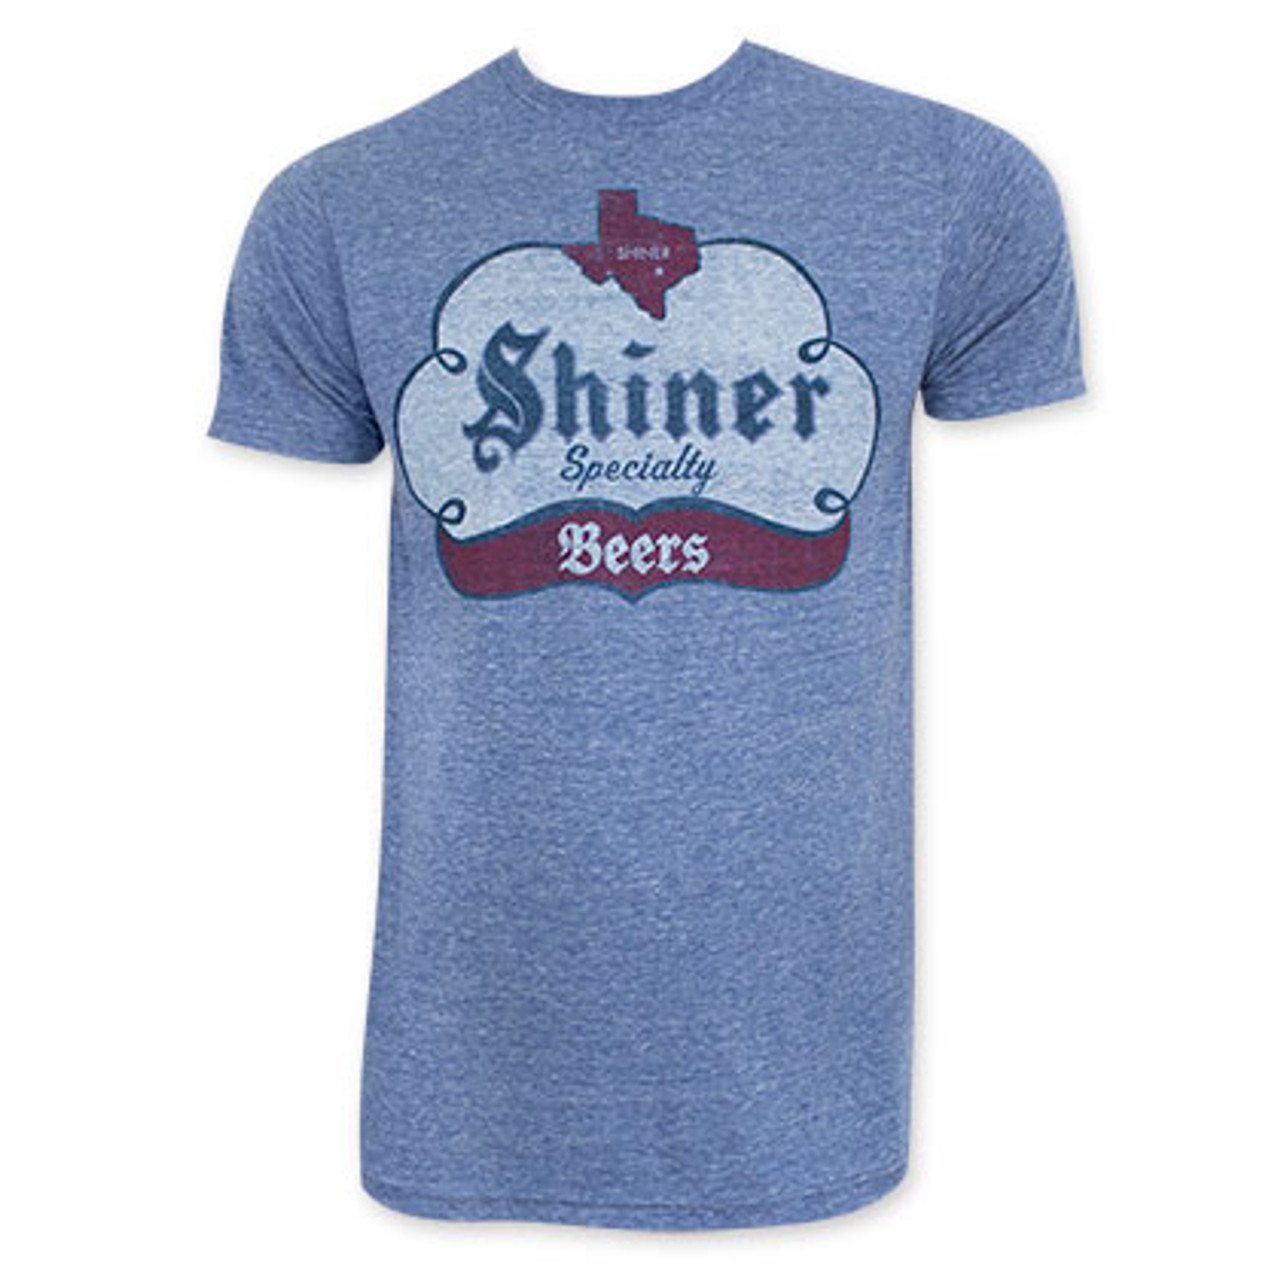 shiner guys Shiner beers, come and take it, vintage ram, and other popular shiner t-shirts, including the nothing finer than a shiner ladies and unisex shirts available.